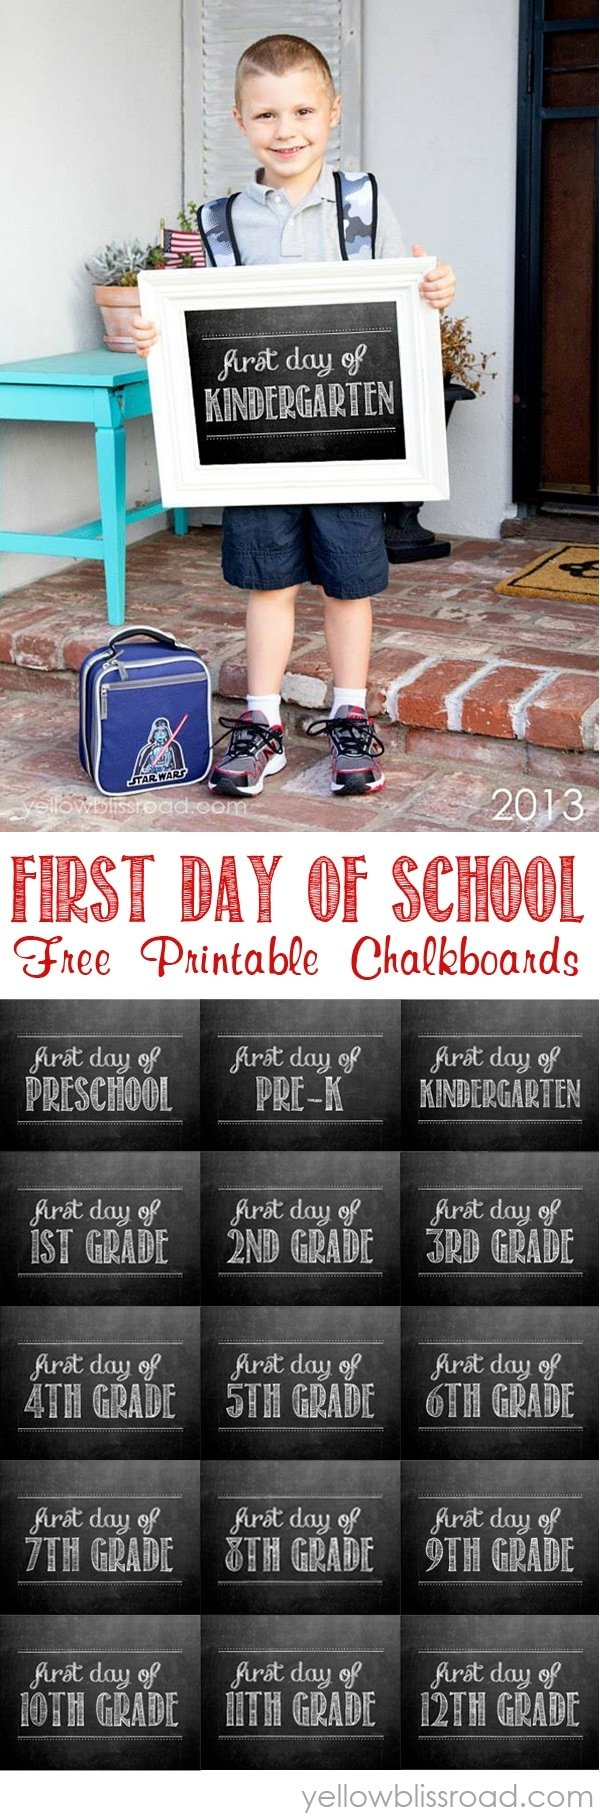 Free Chalkboard Printable for the First Day of School signs